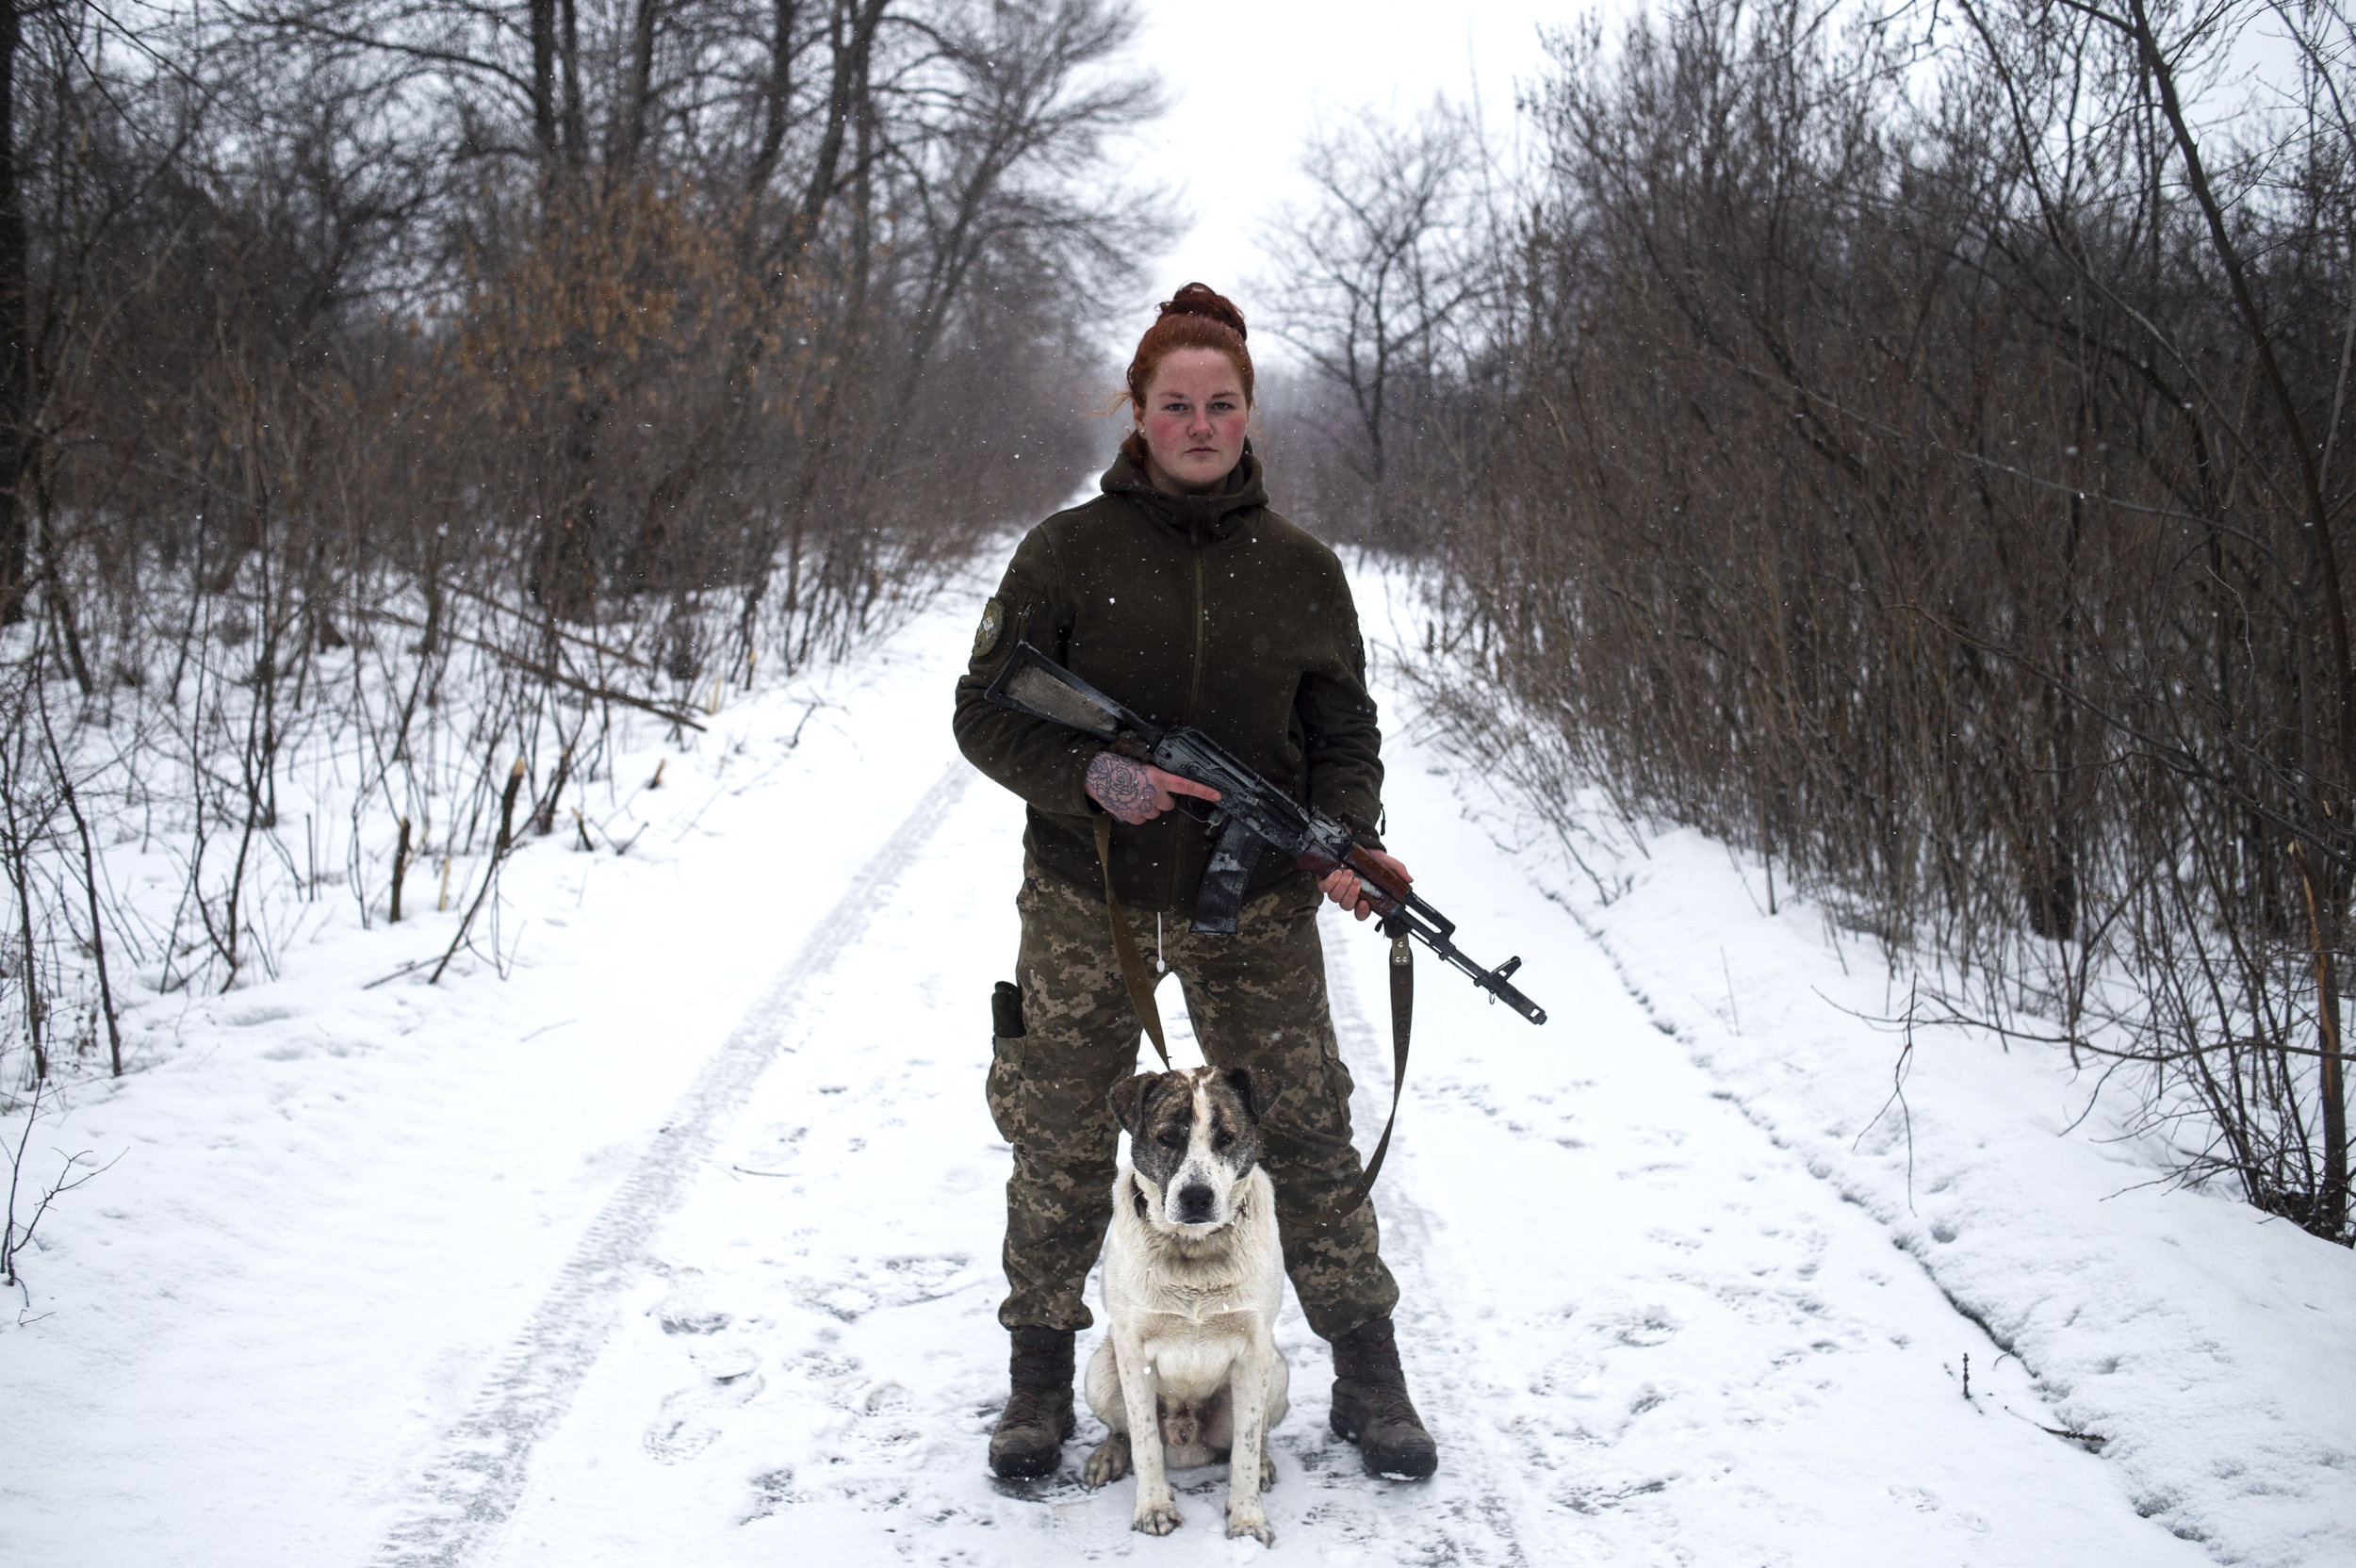 Katya, a soldier in the 54th Mechanized Rifle Brigade poses for a portrait with a dog that her platoon has adopted as their mascot, Ser'Oga.